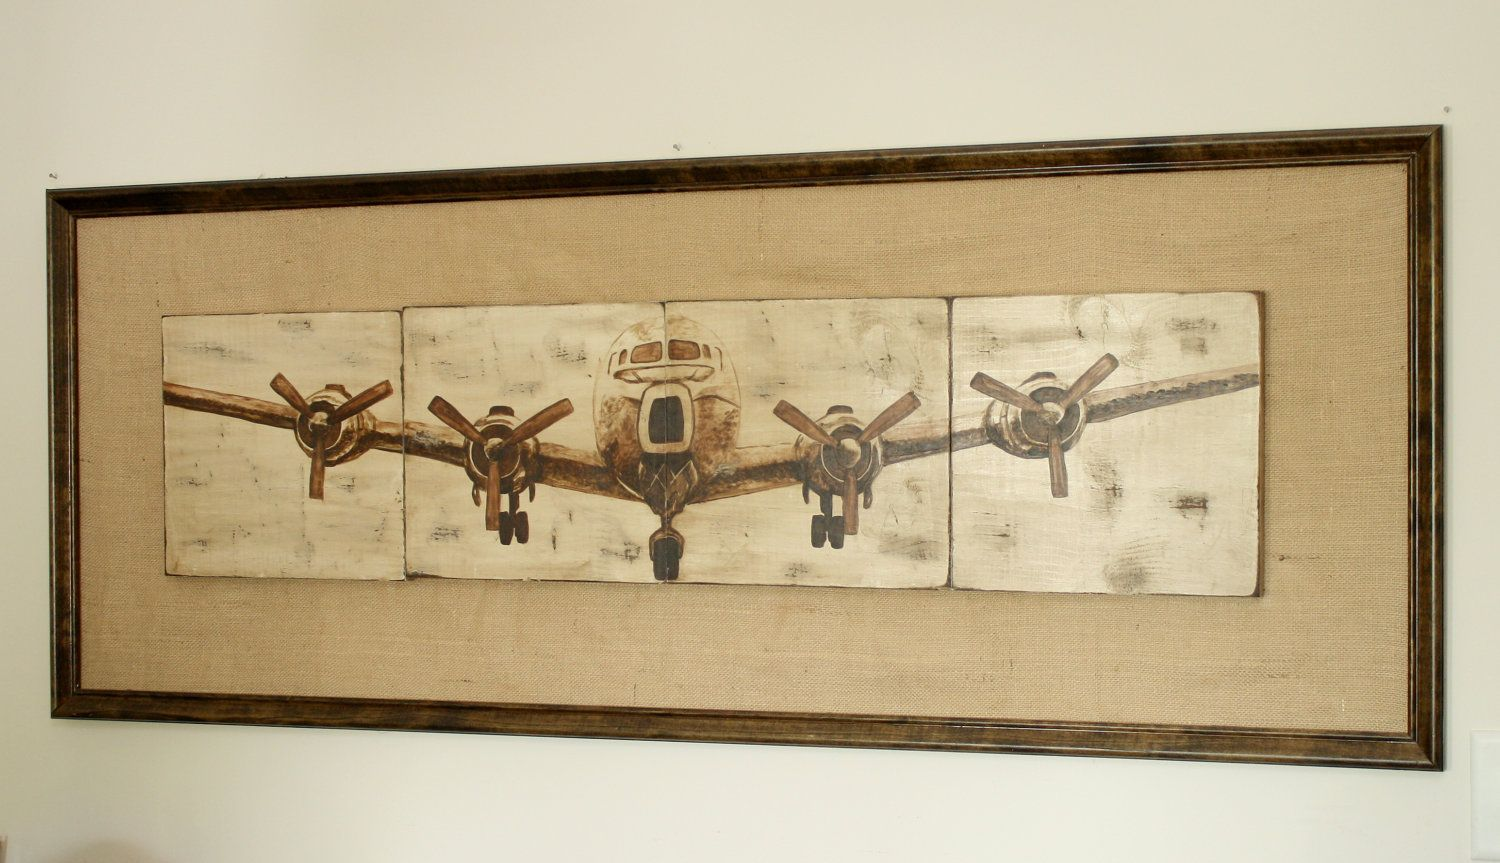 Airplane painted on 4 panels of pine wood, measuring 11.25x4. The ...